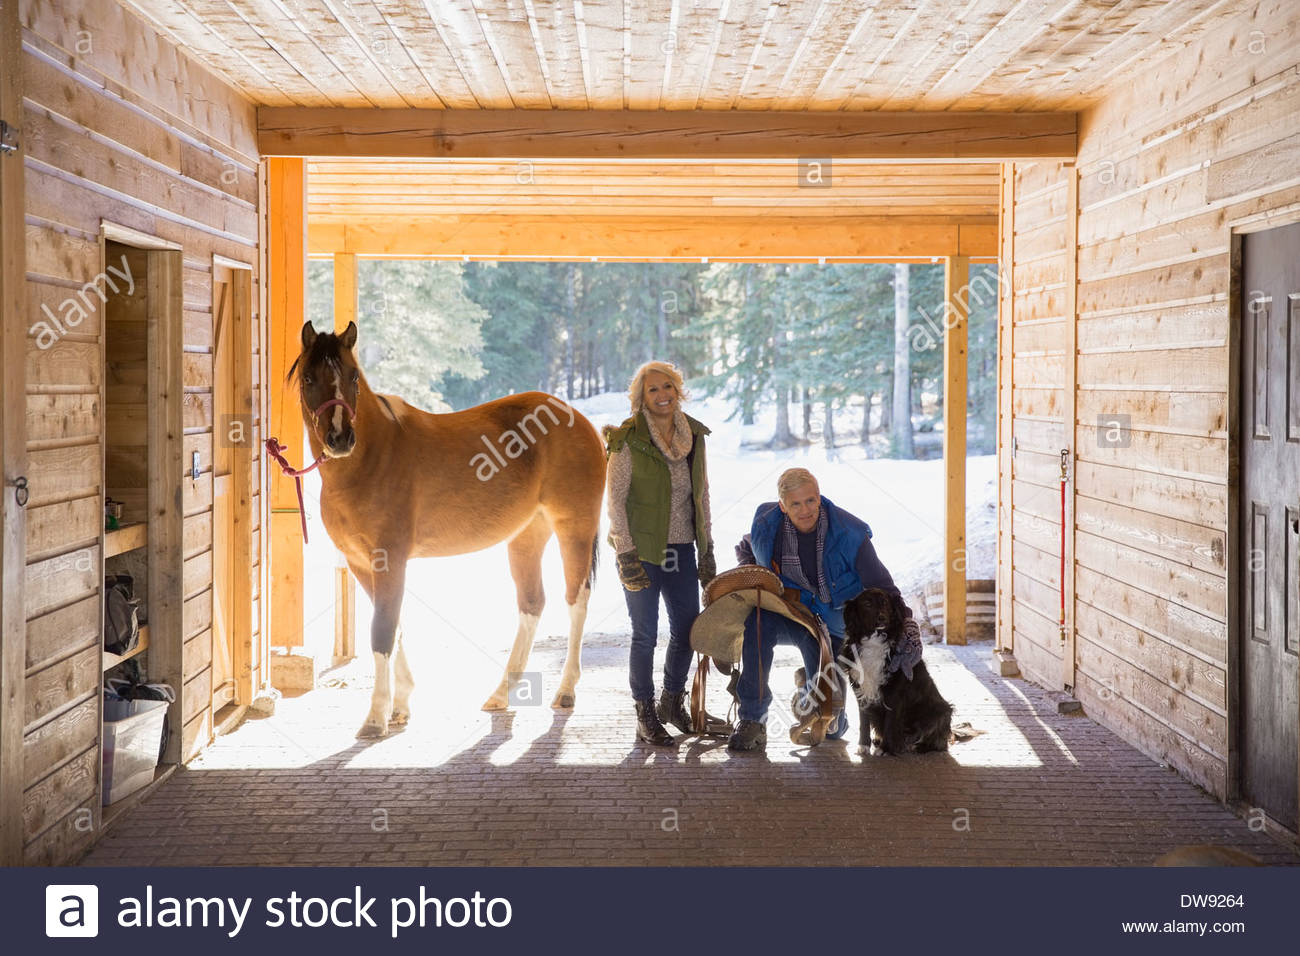 Smiling couple with horse and dog in stable - Stock Image